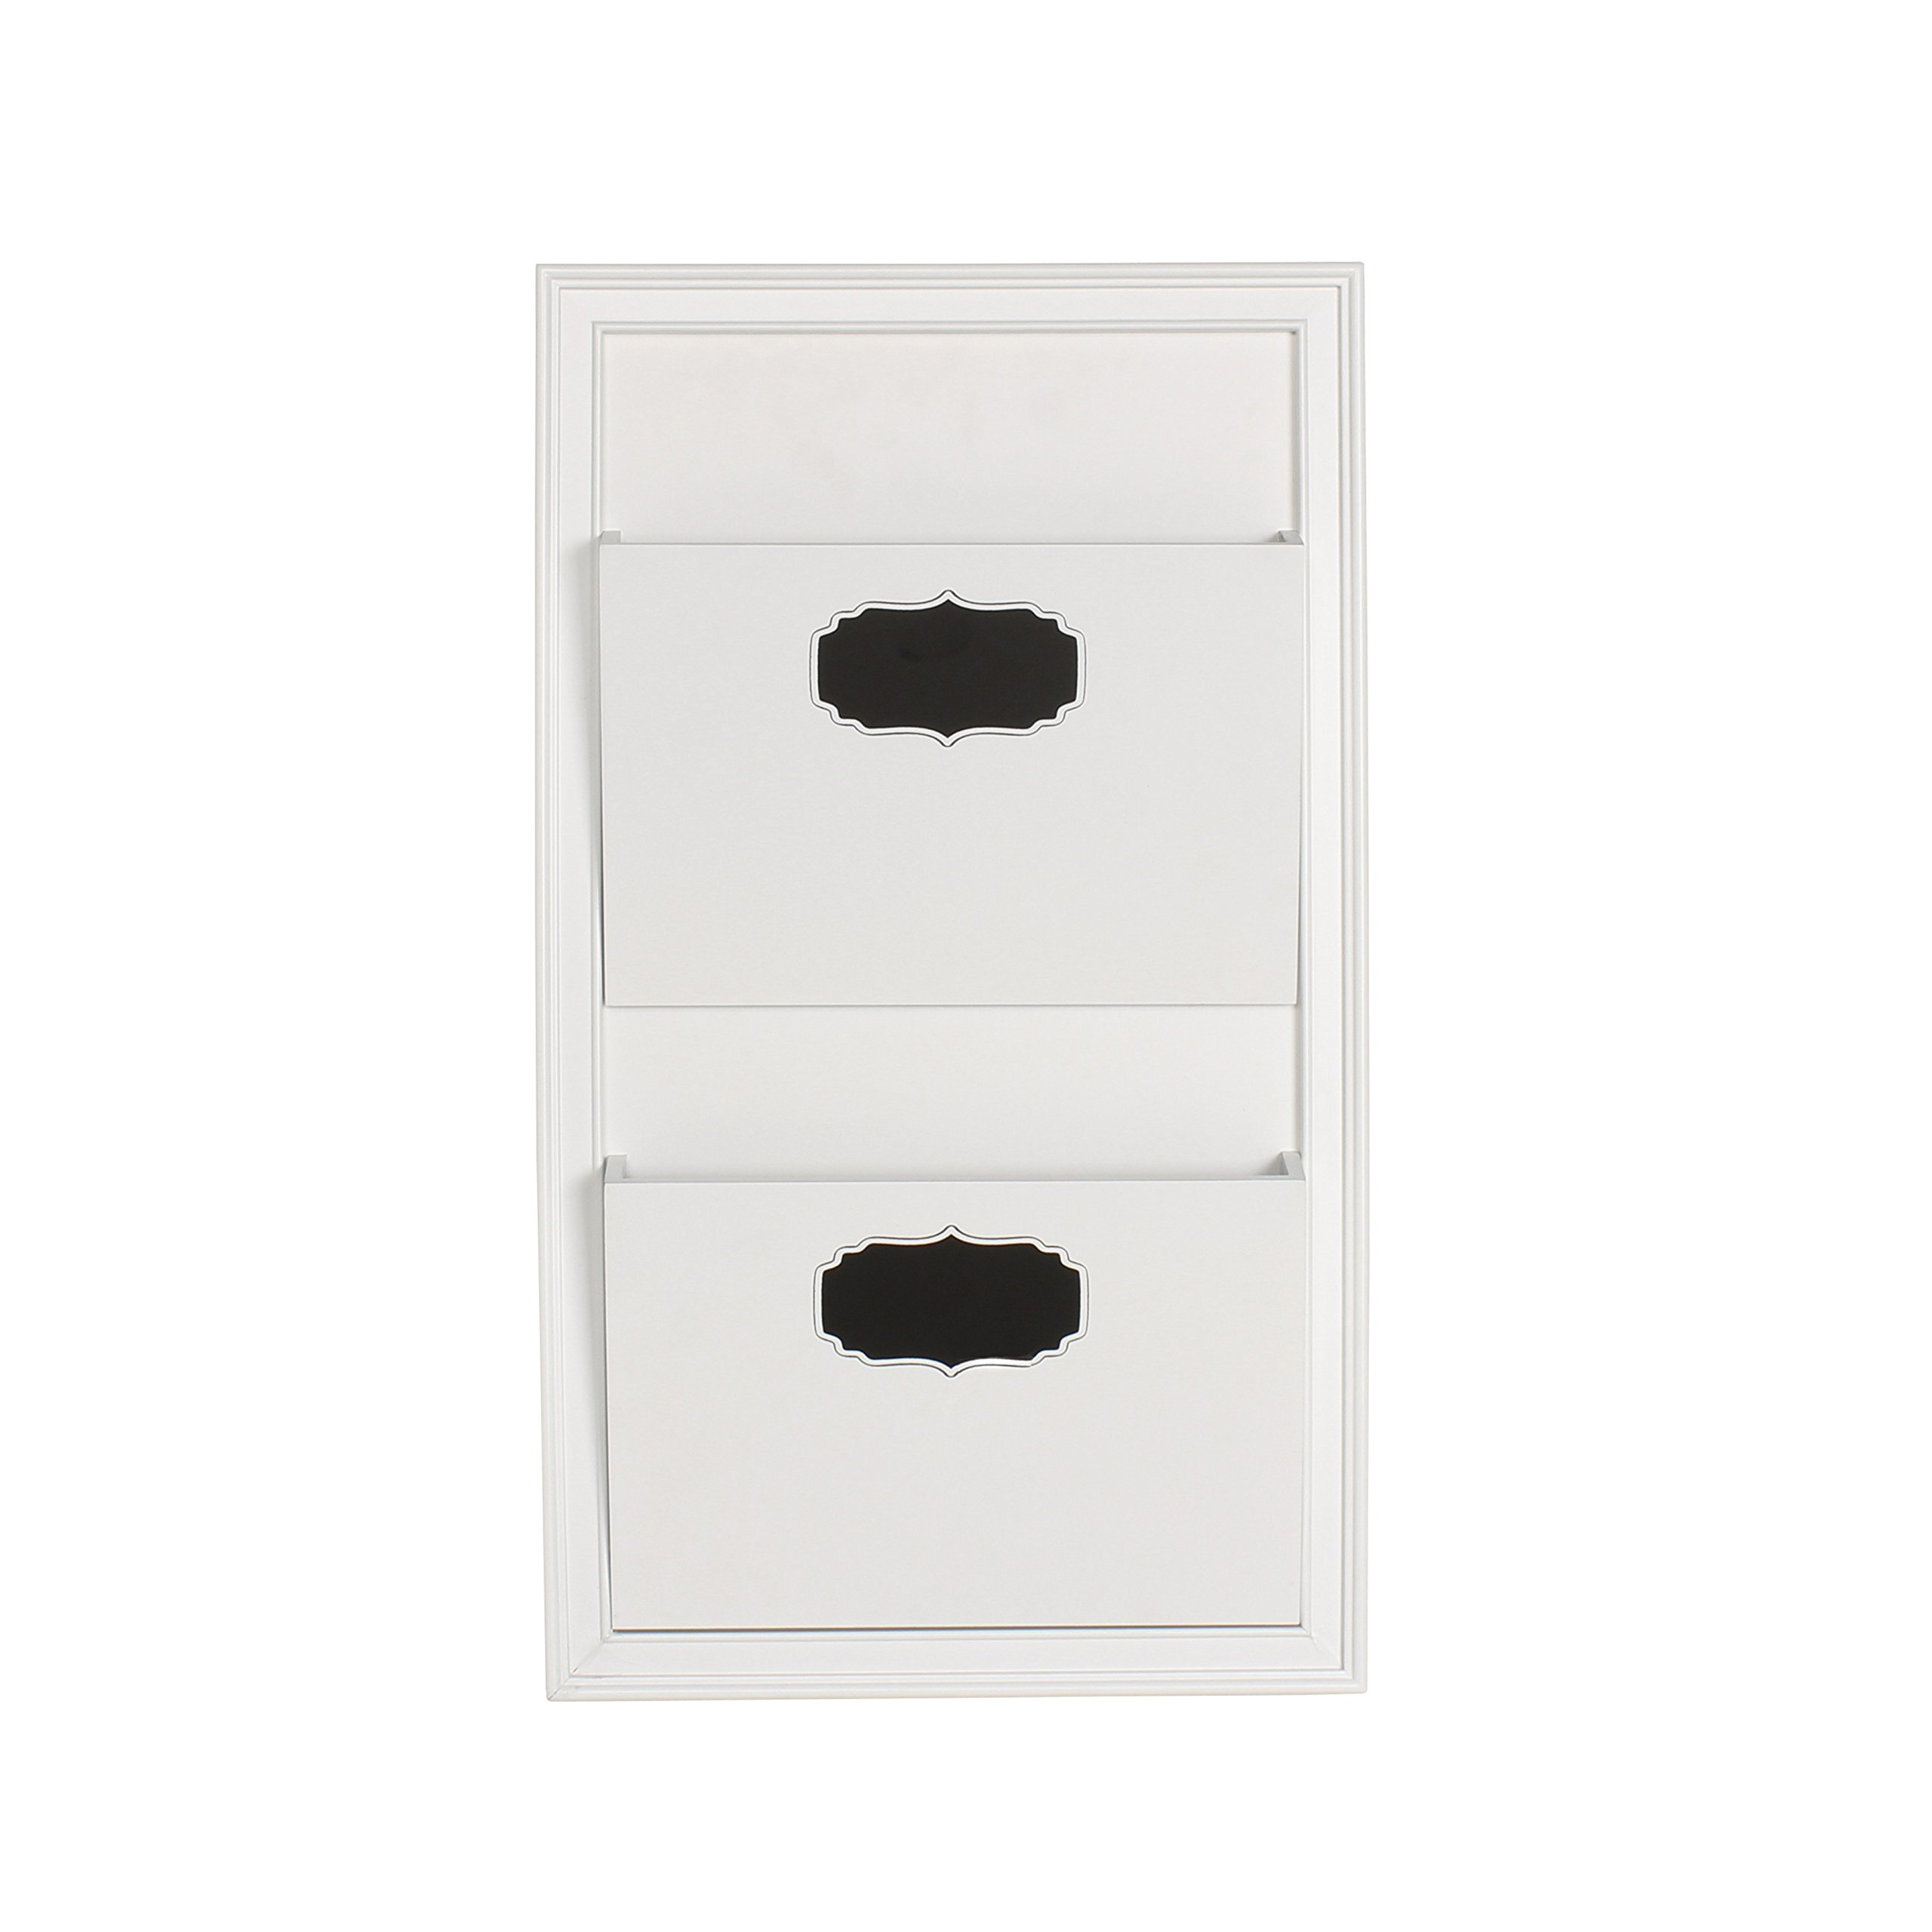 Walcott White Wood Decorative Wall Organizer with 2-Pocket Mail Holder (White)